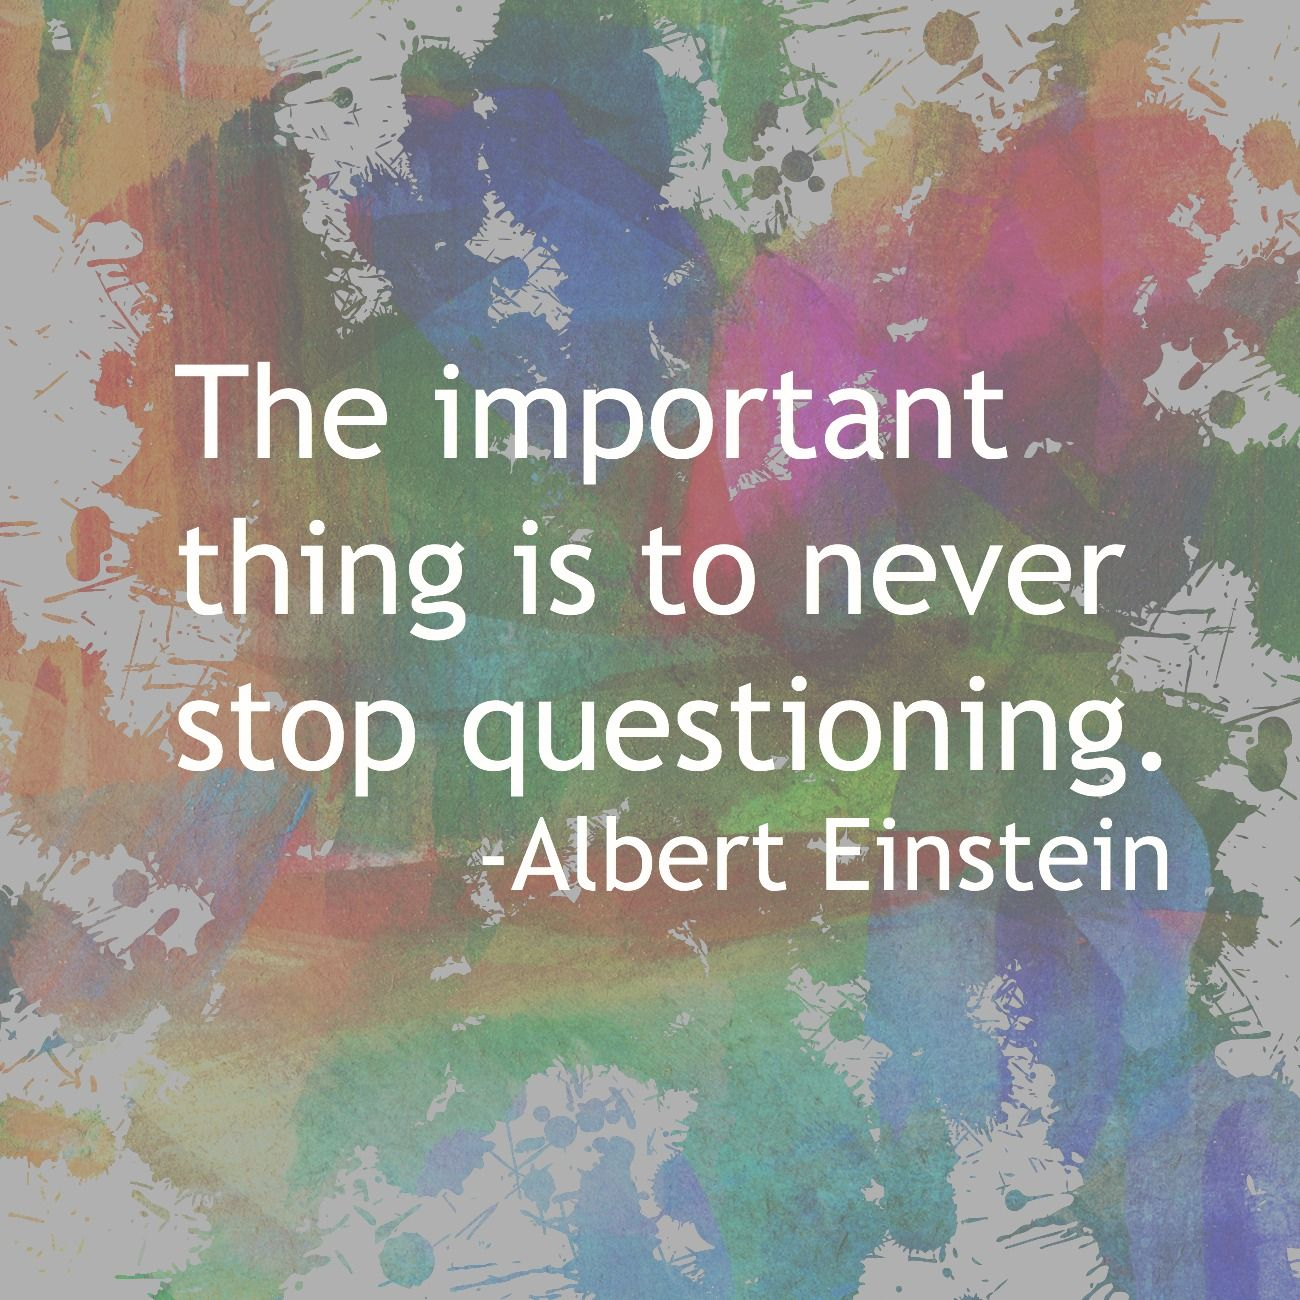 The important thing is to never stop questioning. Albert